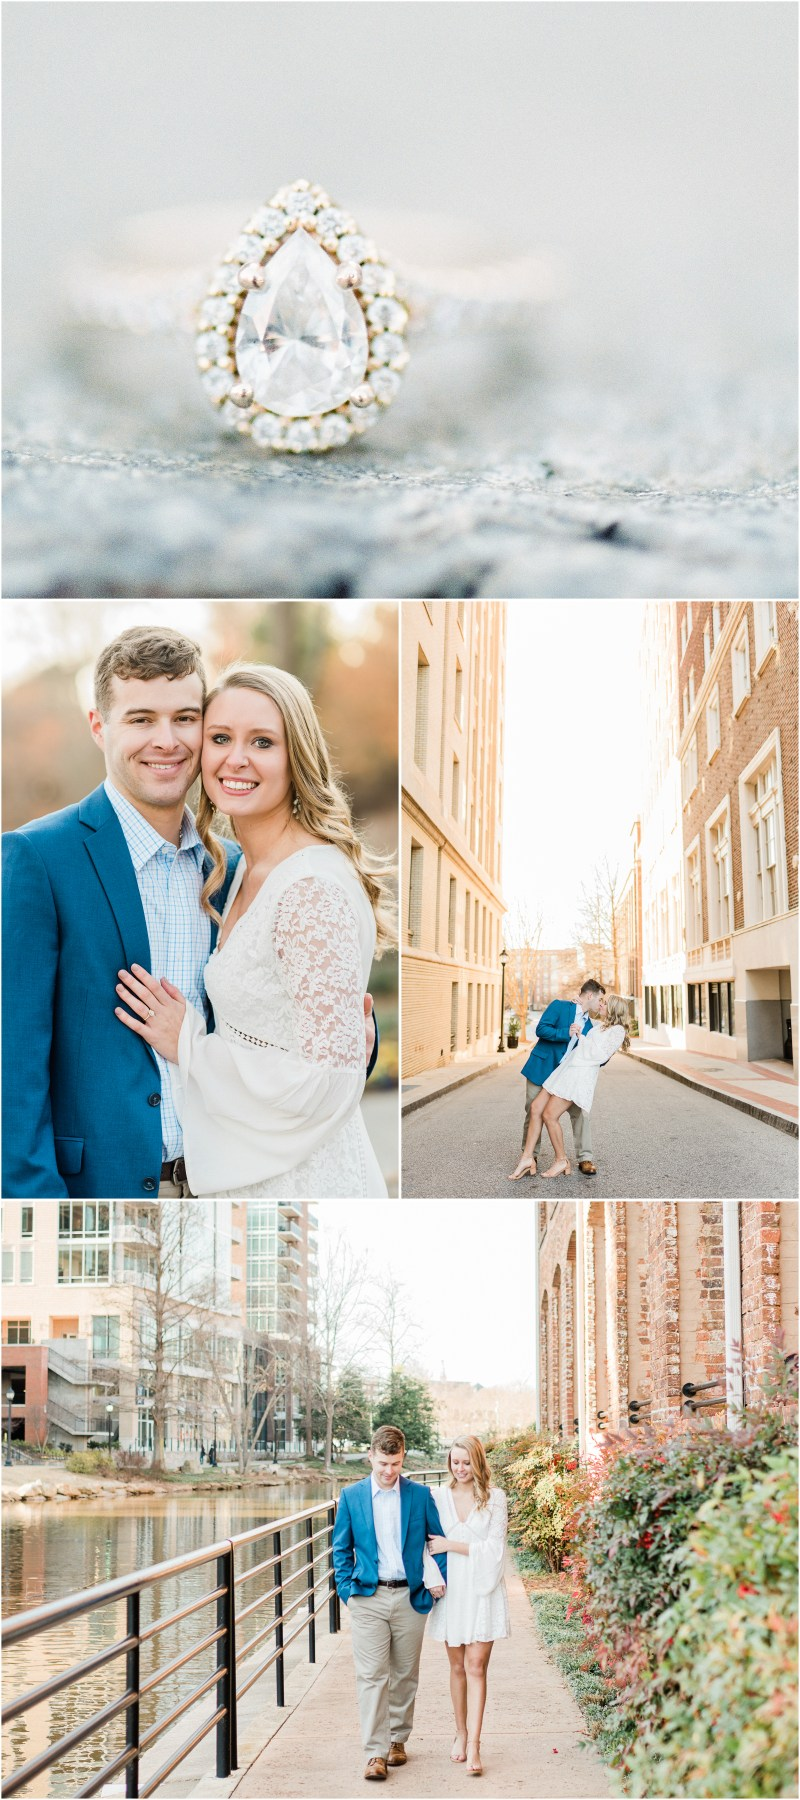 Downtown Greenville winter engagement | Greenville SC engagement photography